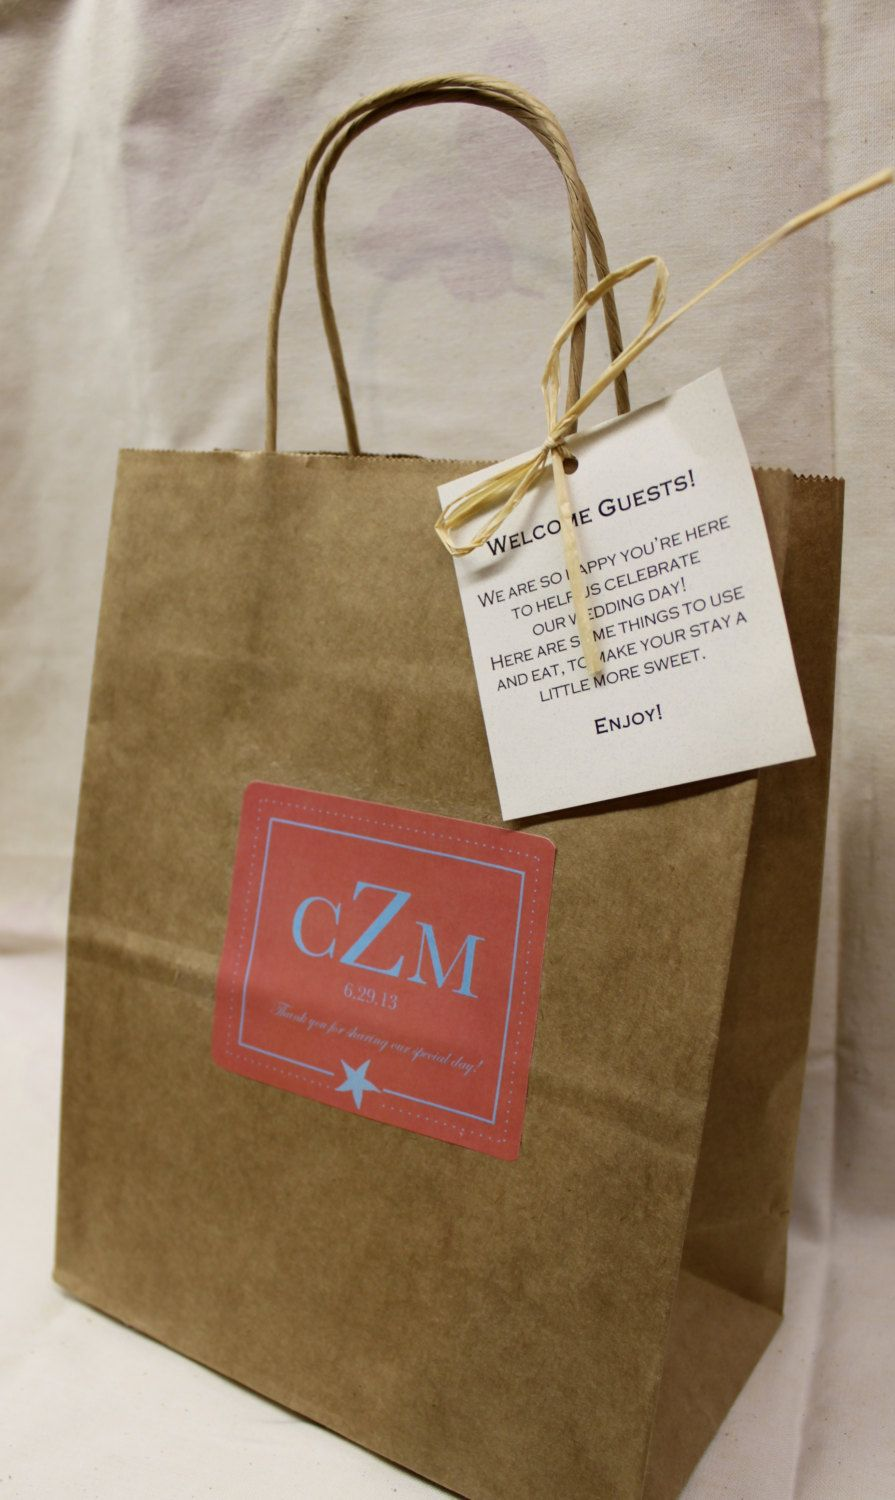 Out Of Town Guest Bag Wedding Welcome Box Weekendour